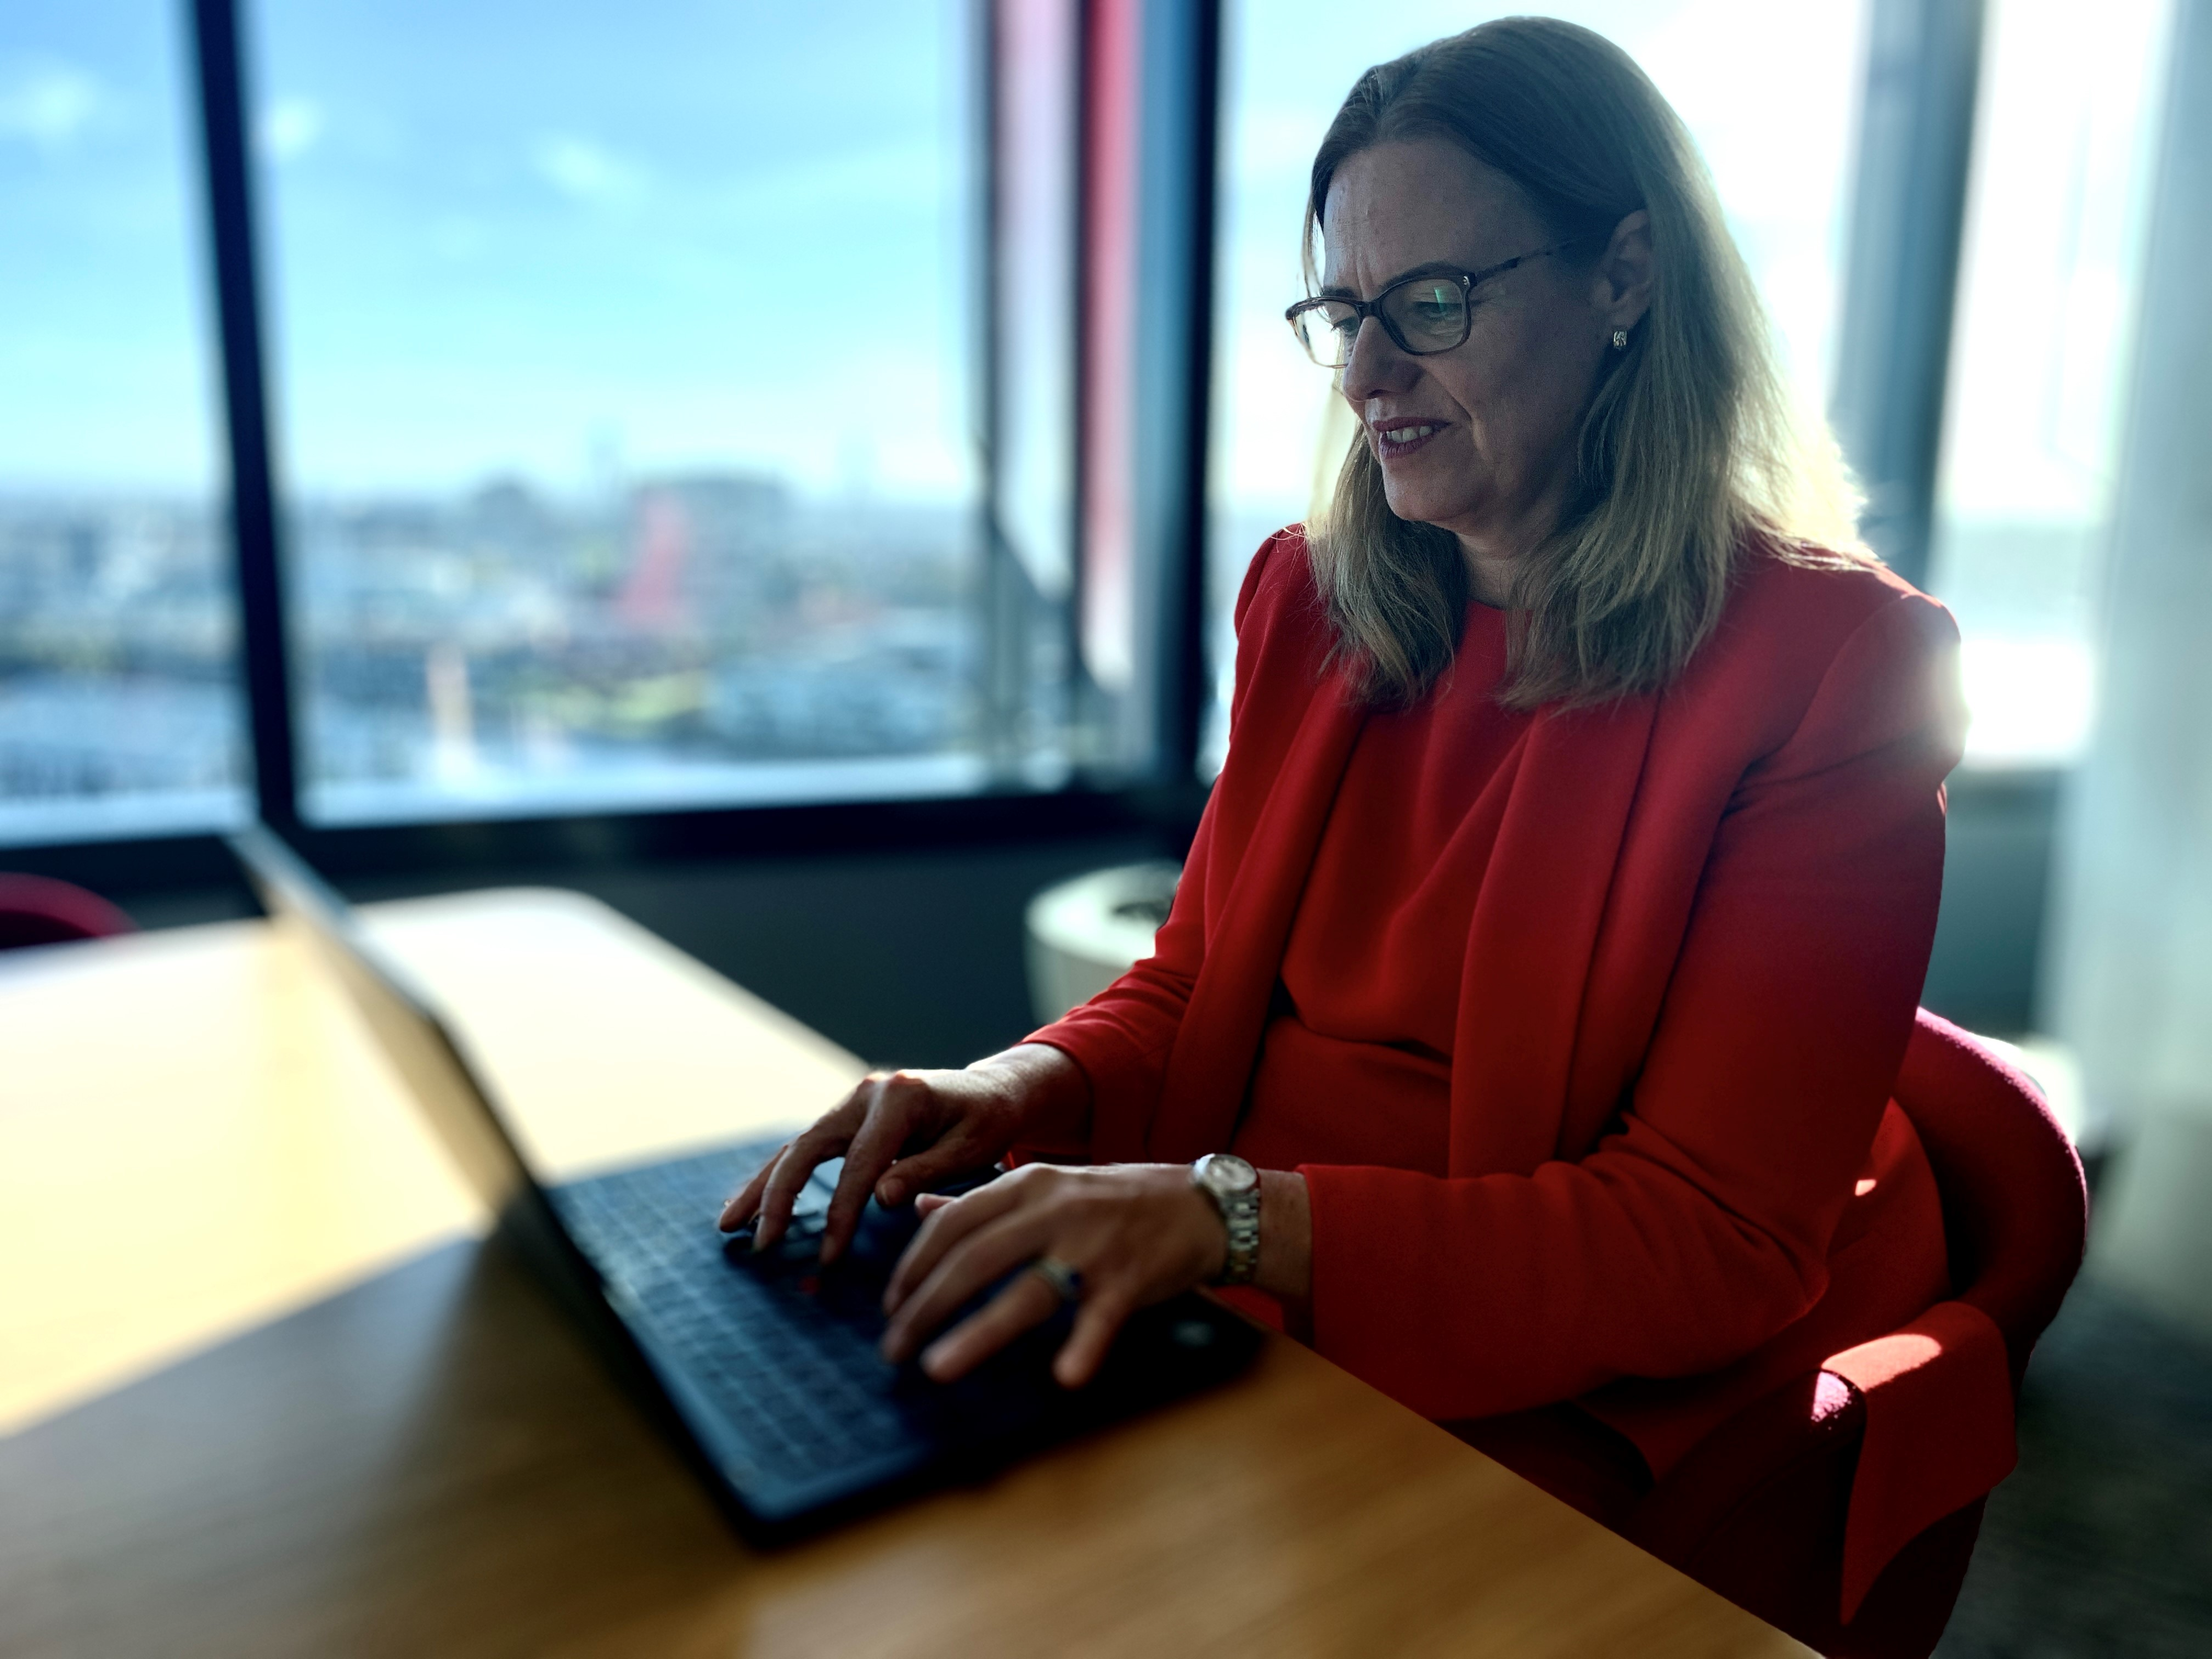 A woman in a red suit types on a laptop